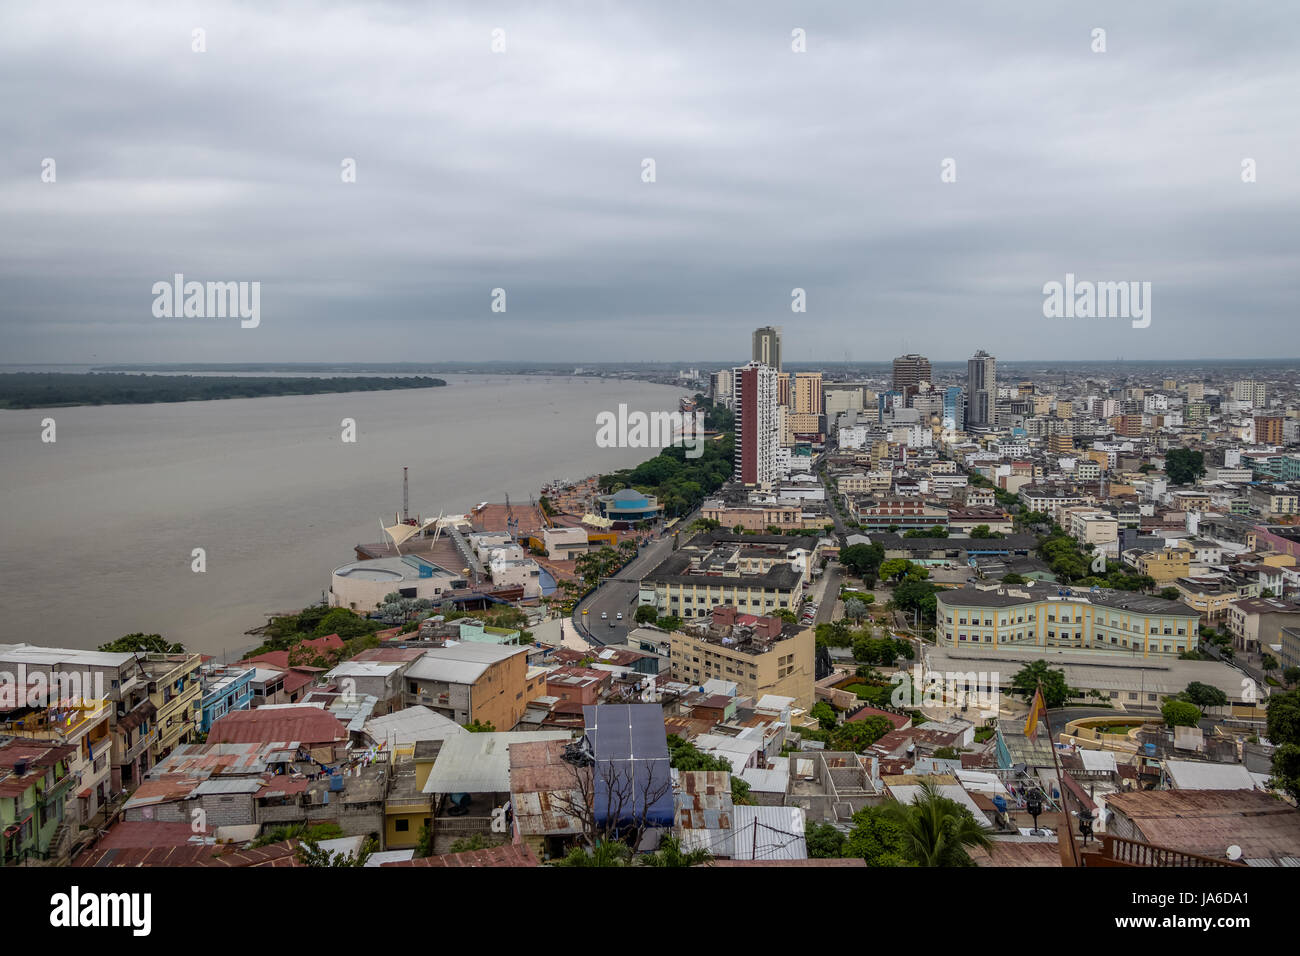 Aerial view of Guayaquil city and Guayas River - Guayaquil, Ecuador - Stock Image